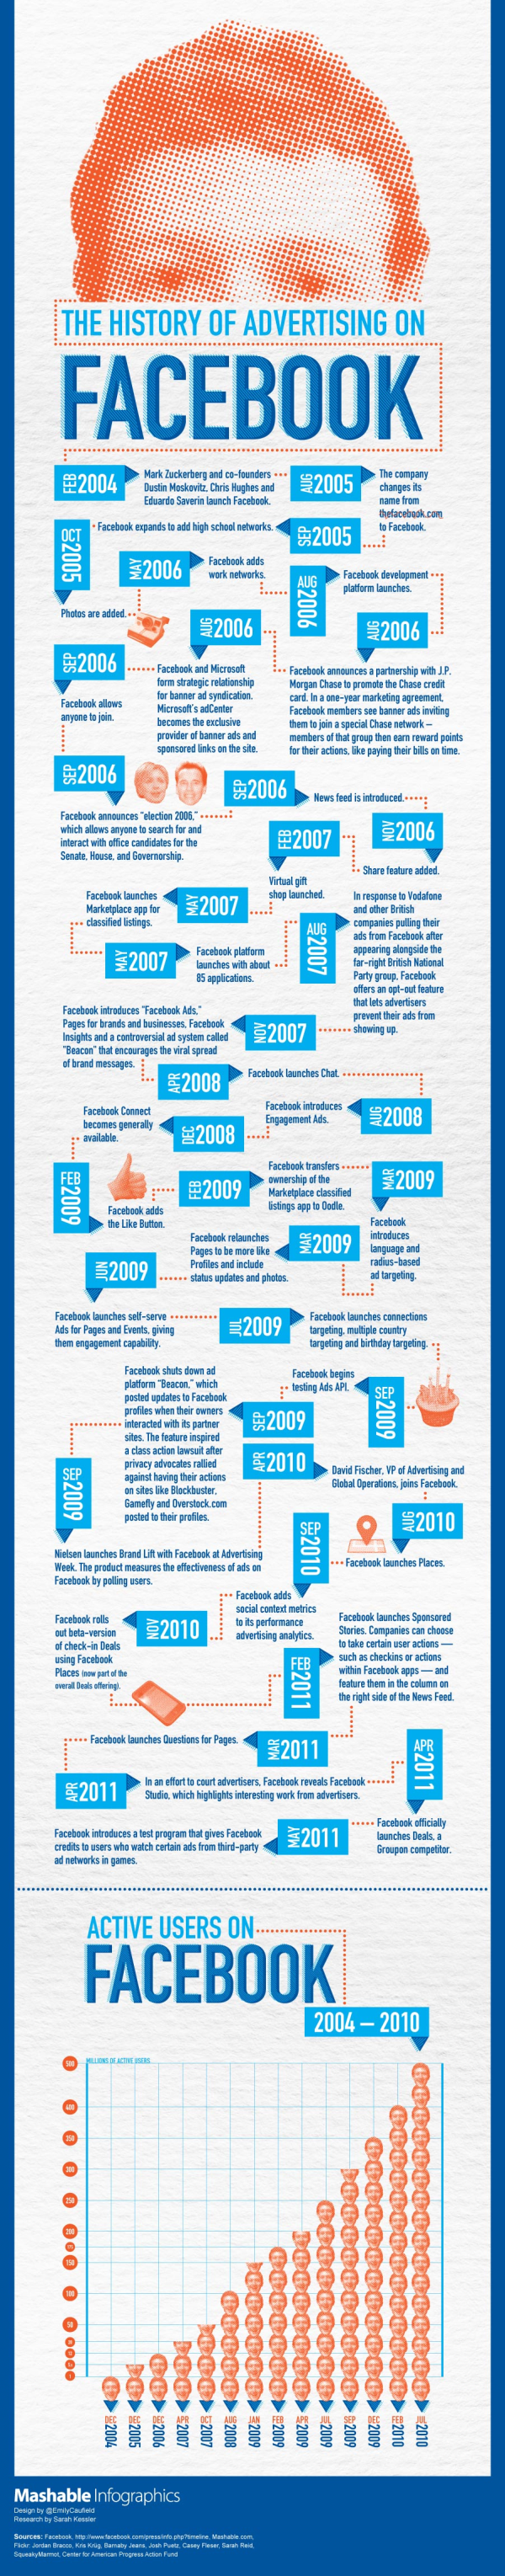 facebook advertising mashable infographic 902 resized 600